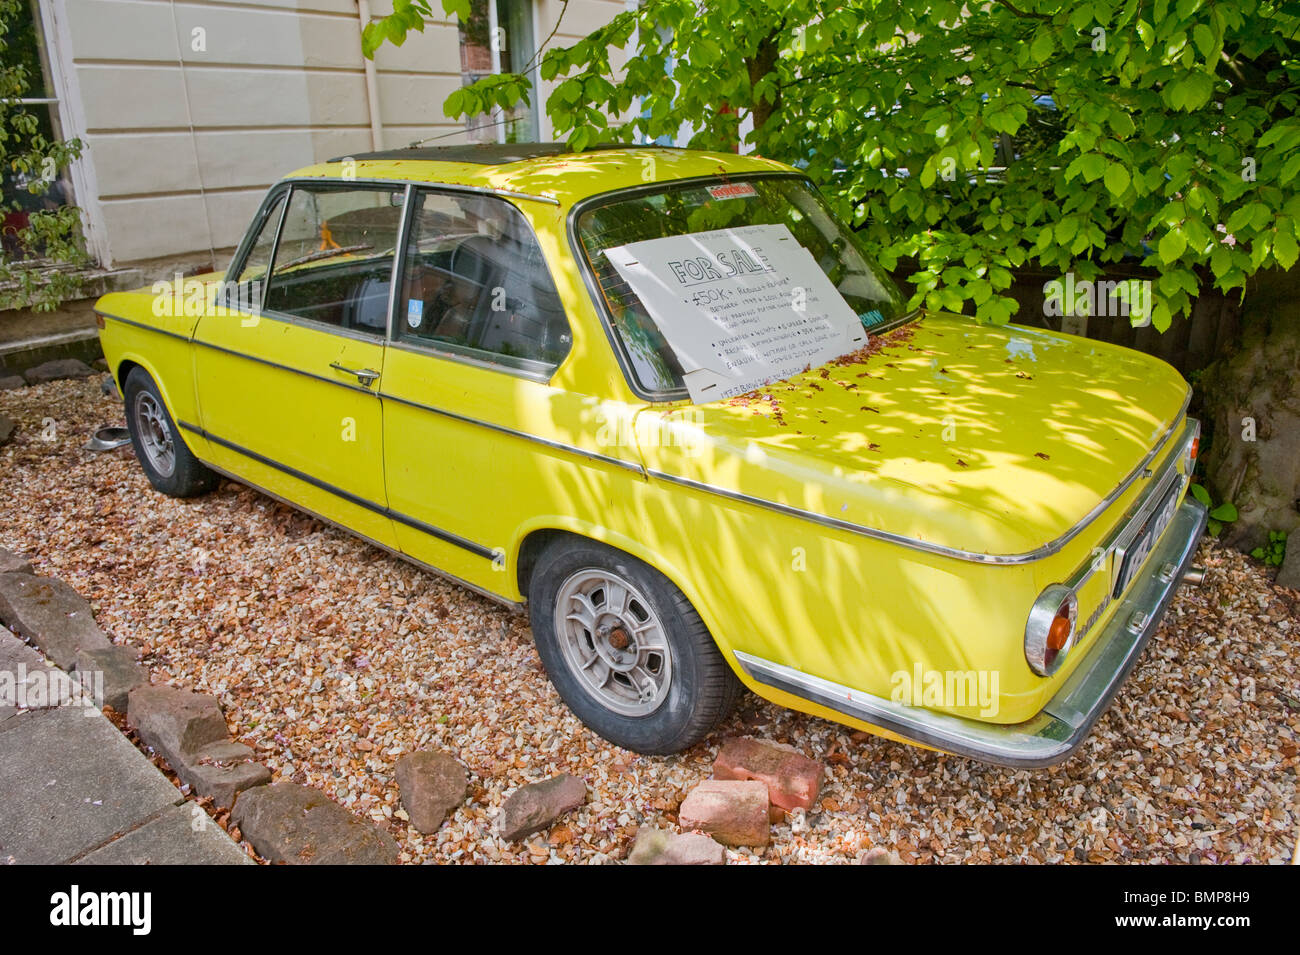 Bmw 2002 Tii High Resolution Stock Photography And Images Alamy